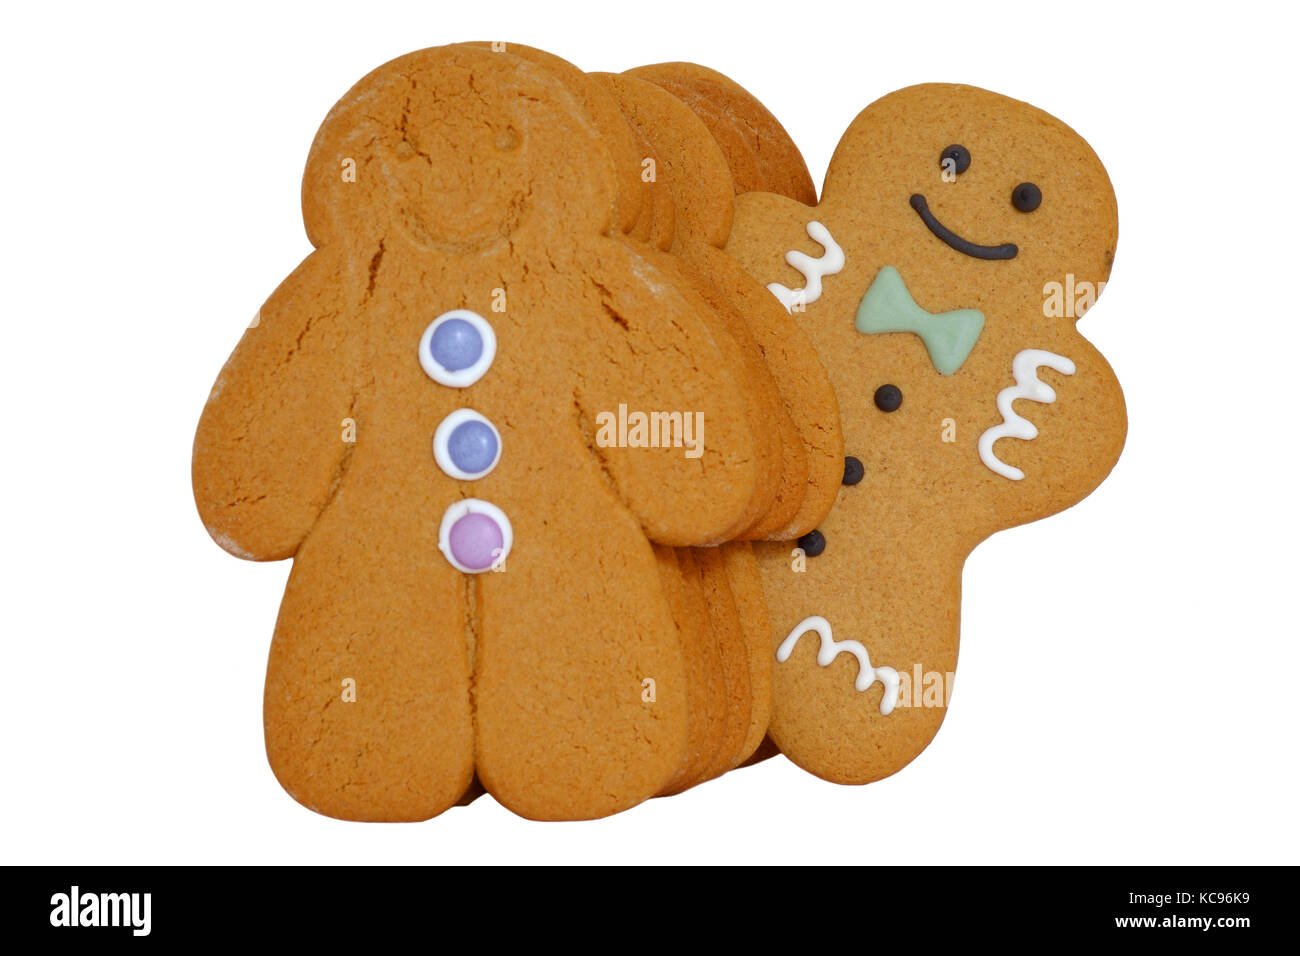 a line up of gingerbread men with one of them standing out of line cut out on white background - Stock Image